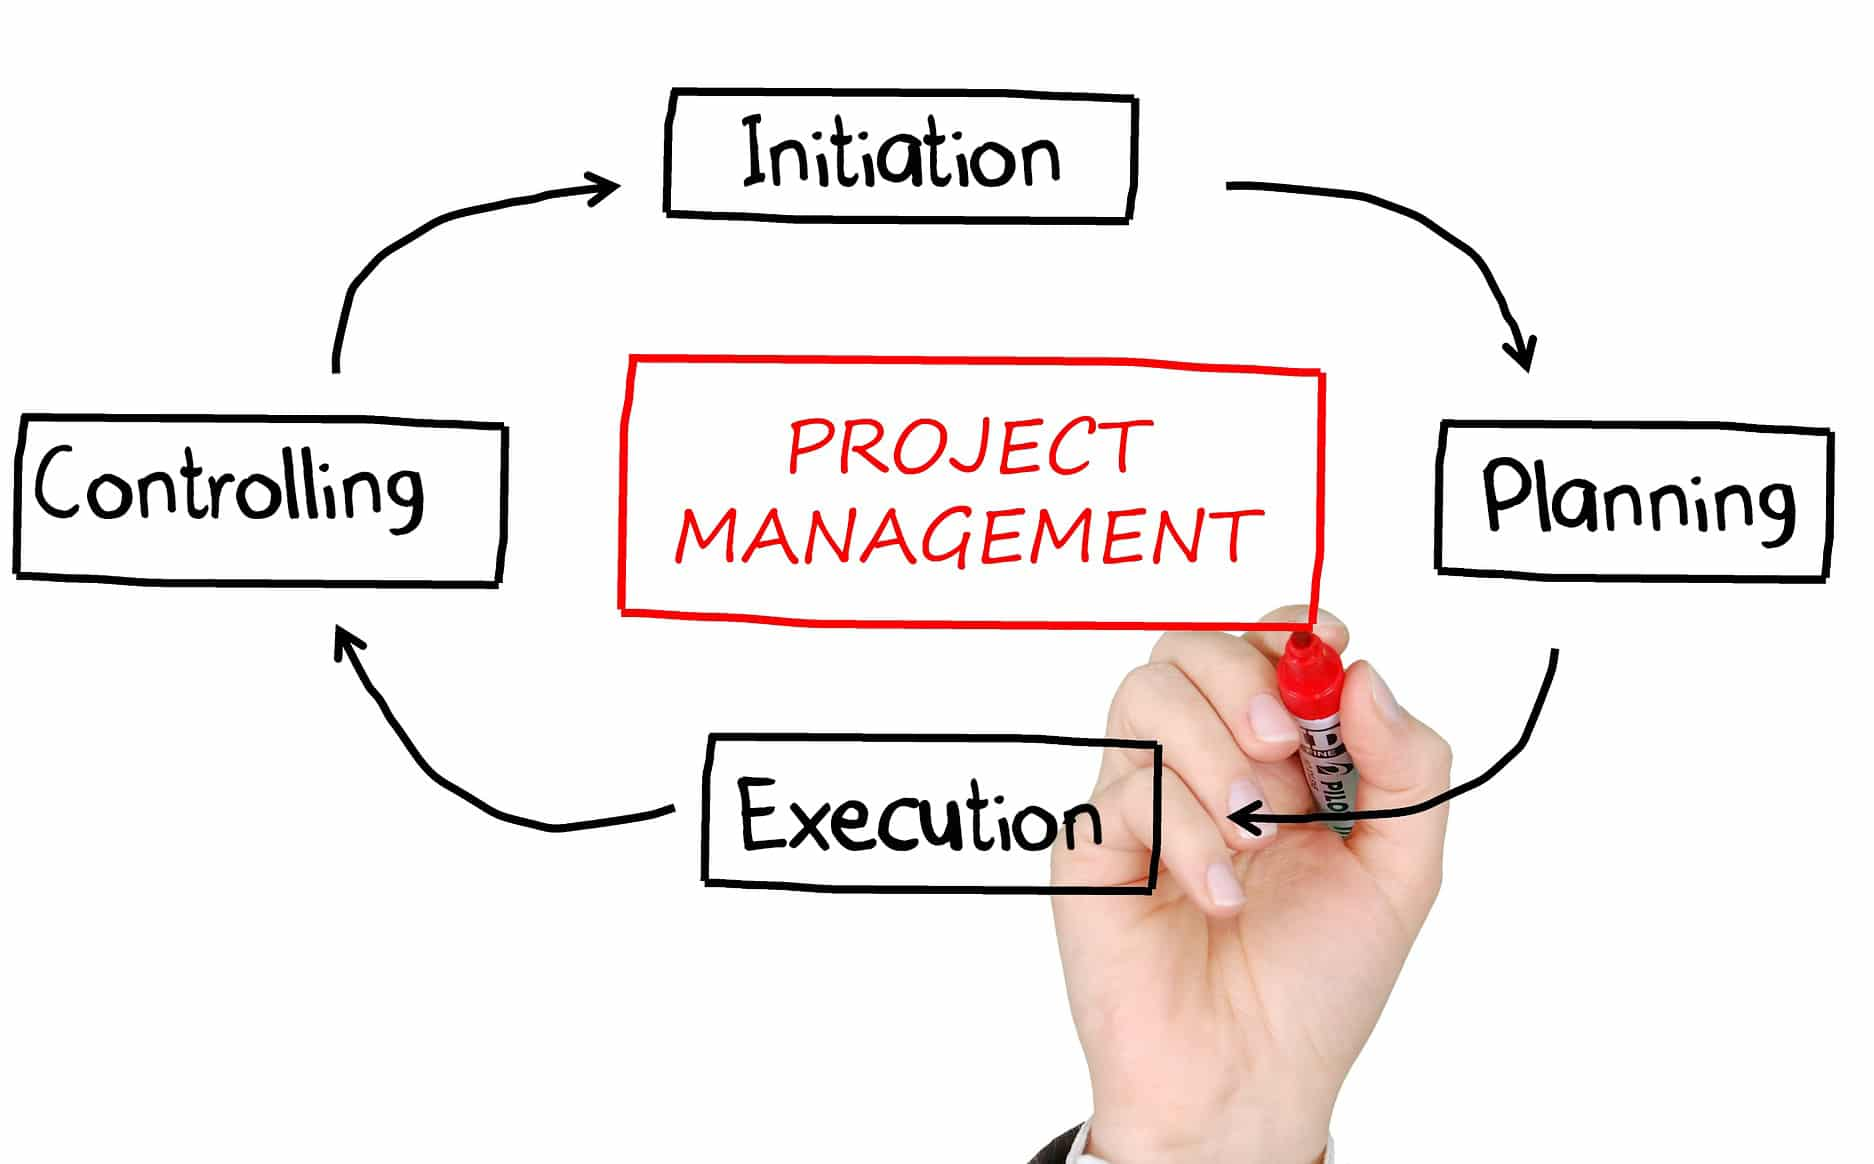 Project Management Training What It Teaches You and Where to Get It